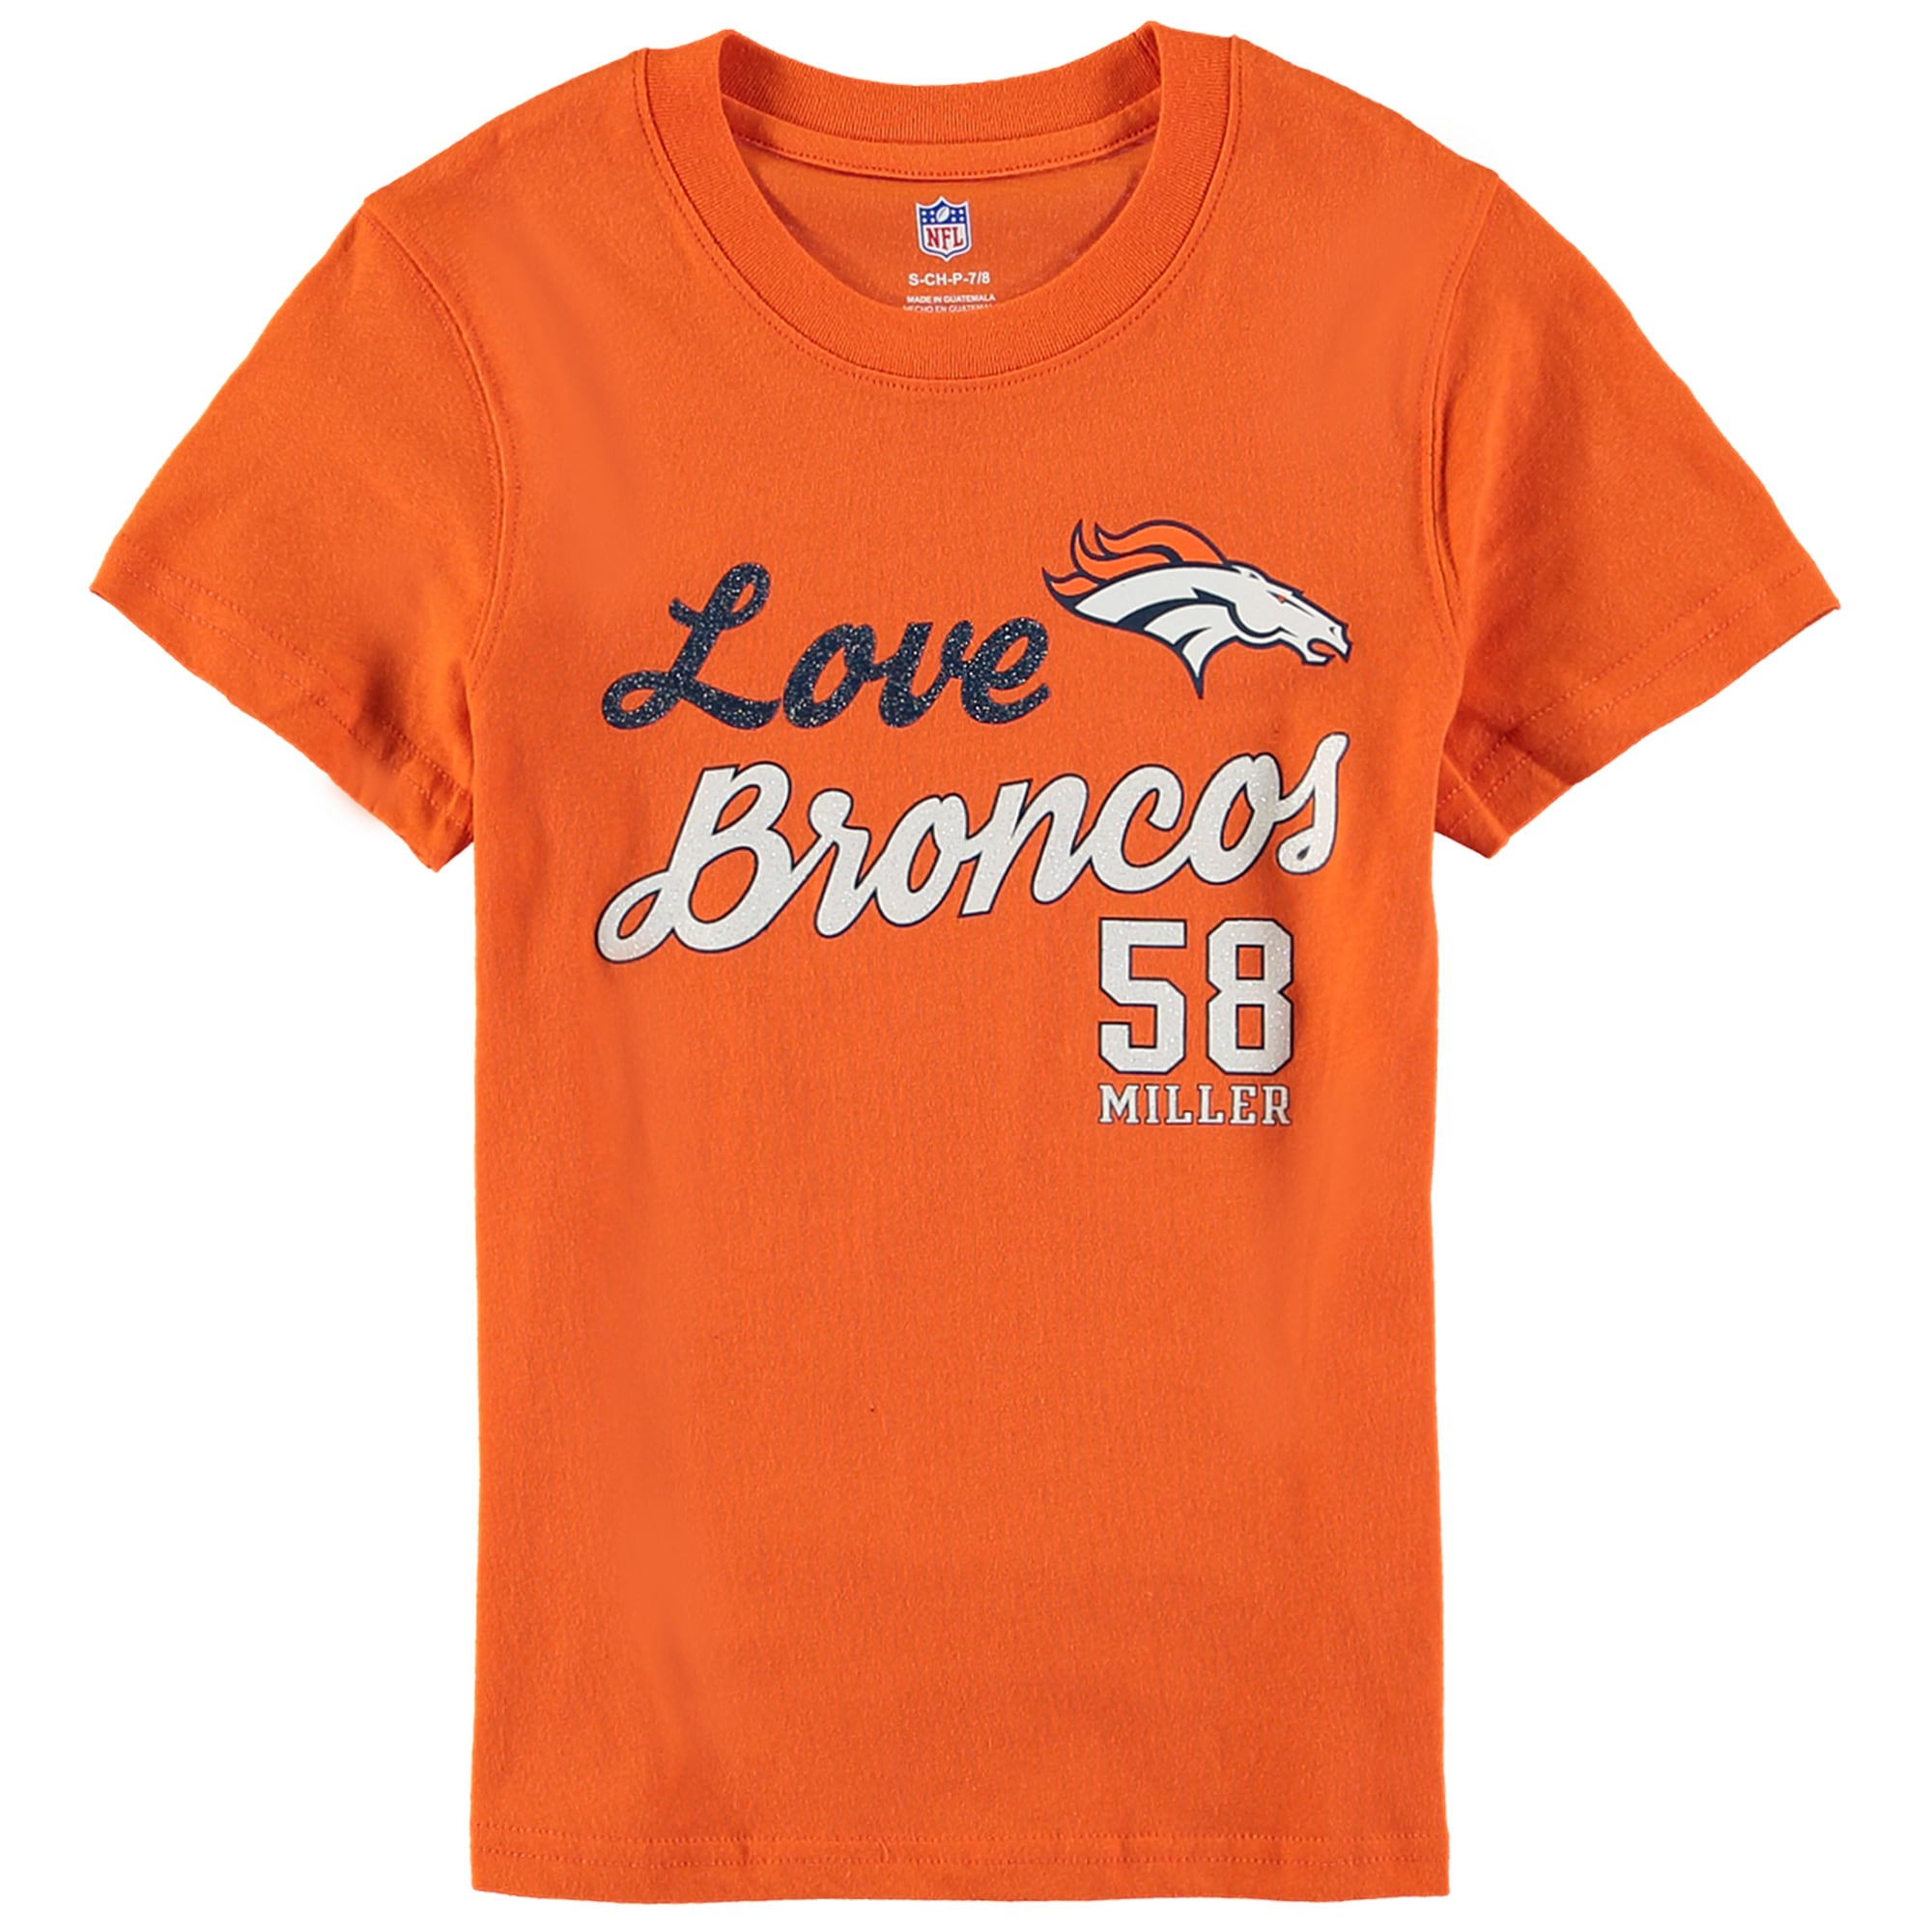 Von Miller Denver Broncos Girls Youth Glitter Live Love Team Player Name & Number T-Shirt - Orange